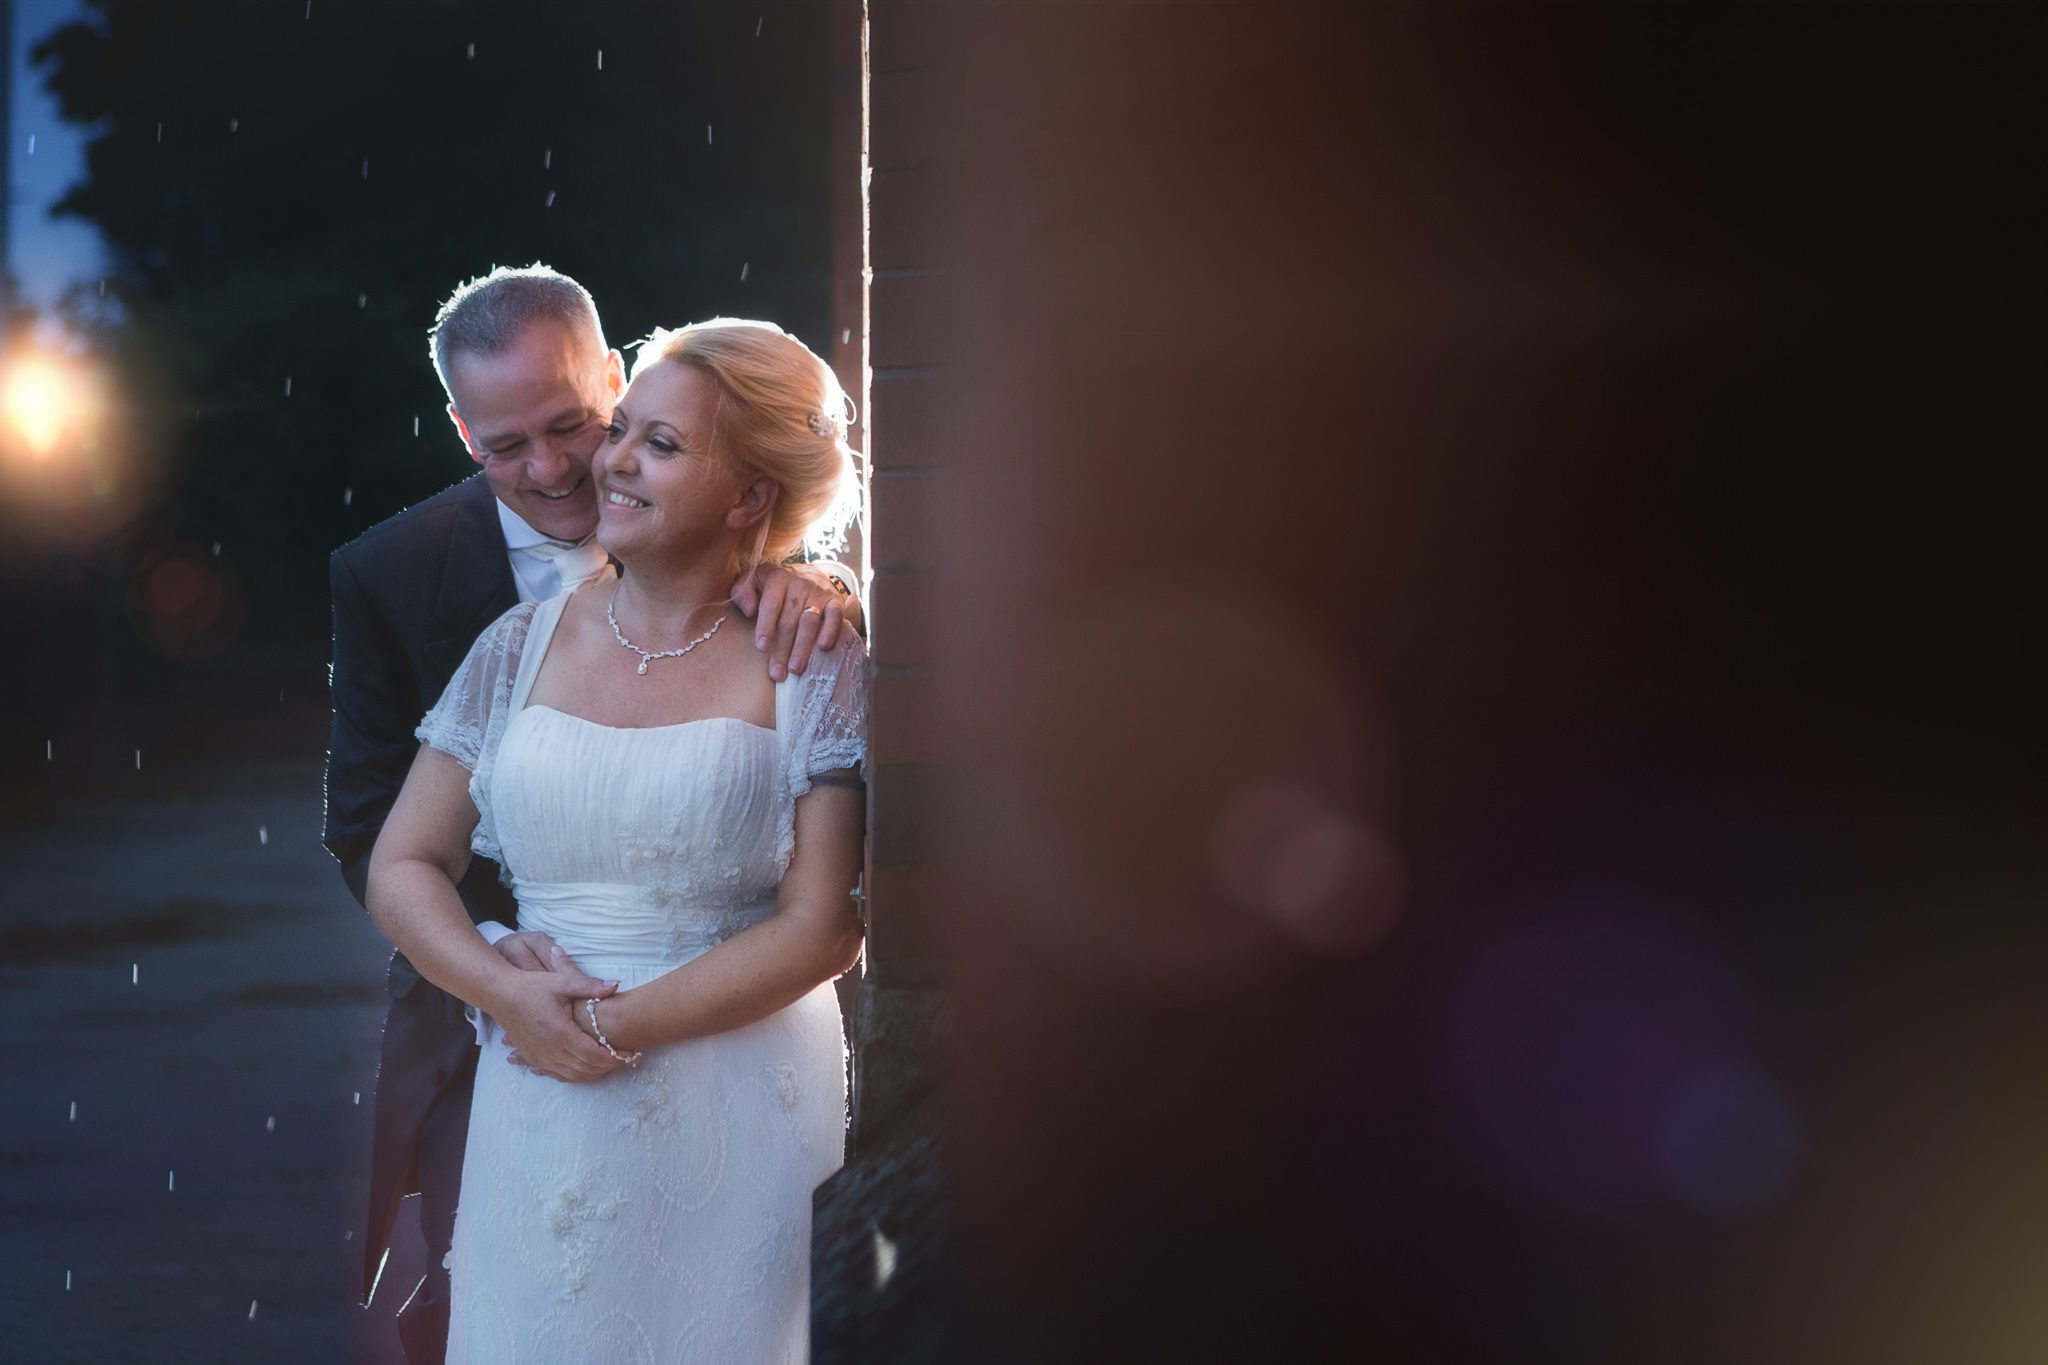 Manchester Wedding Photographer - Karen and John